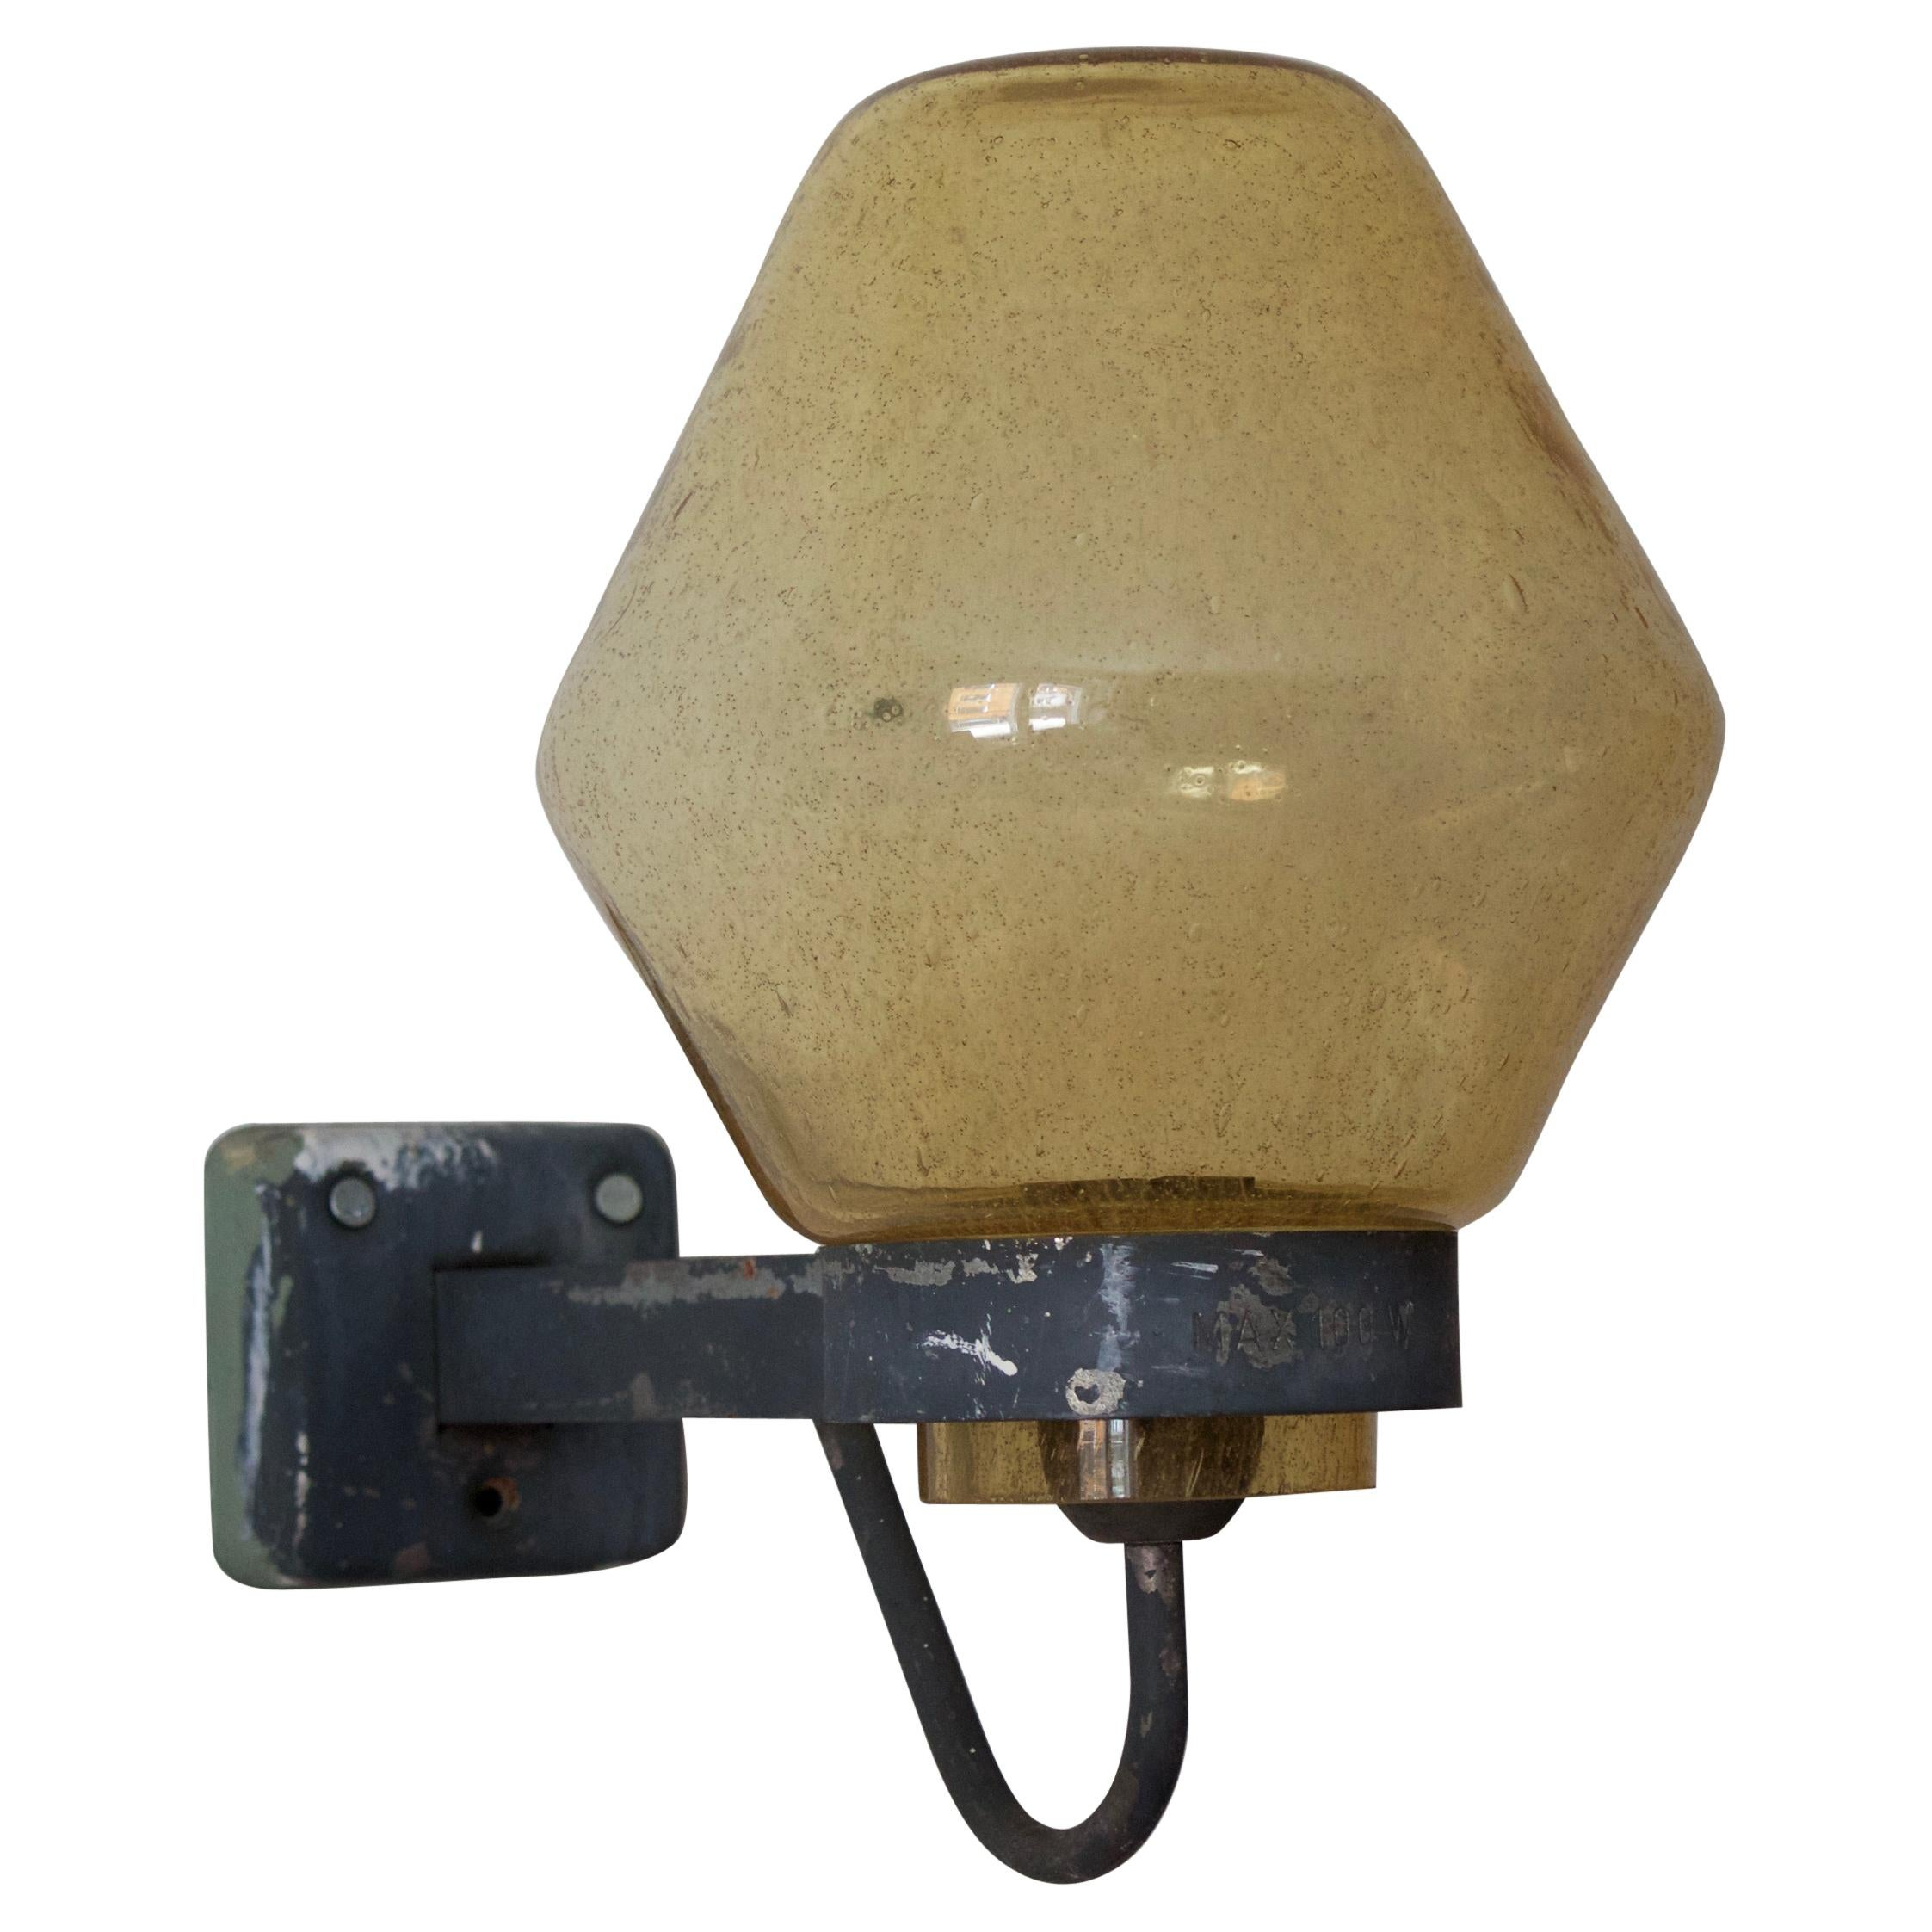 ASEA, Wall Light, Lacquered Metal, Blown Glass, Sweden, 1940s